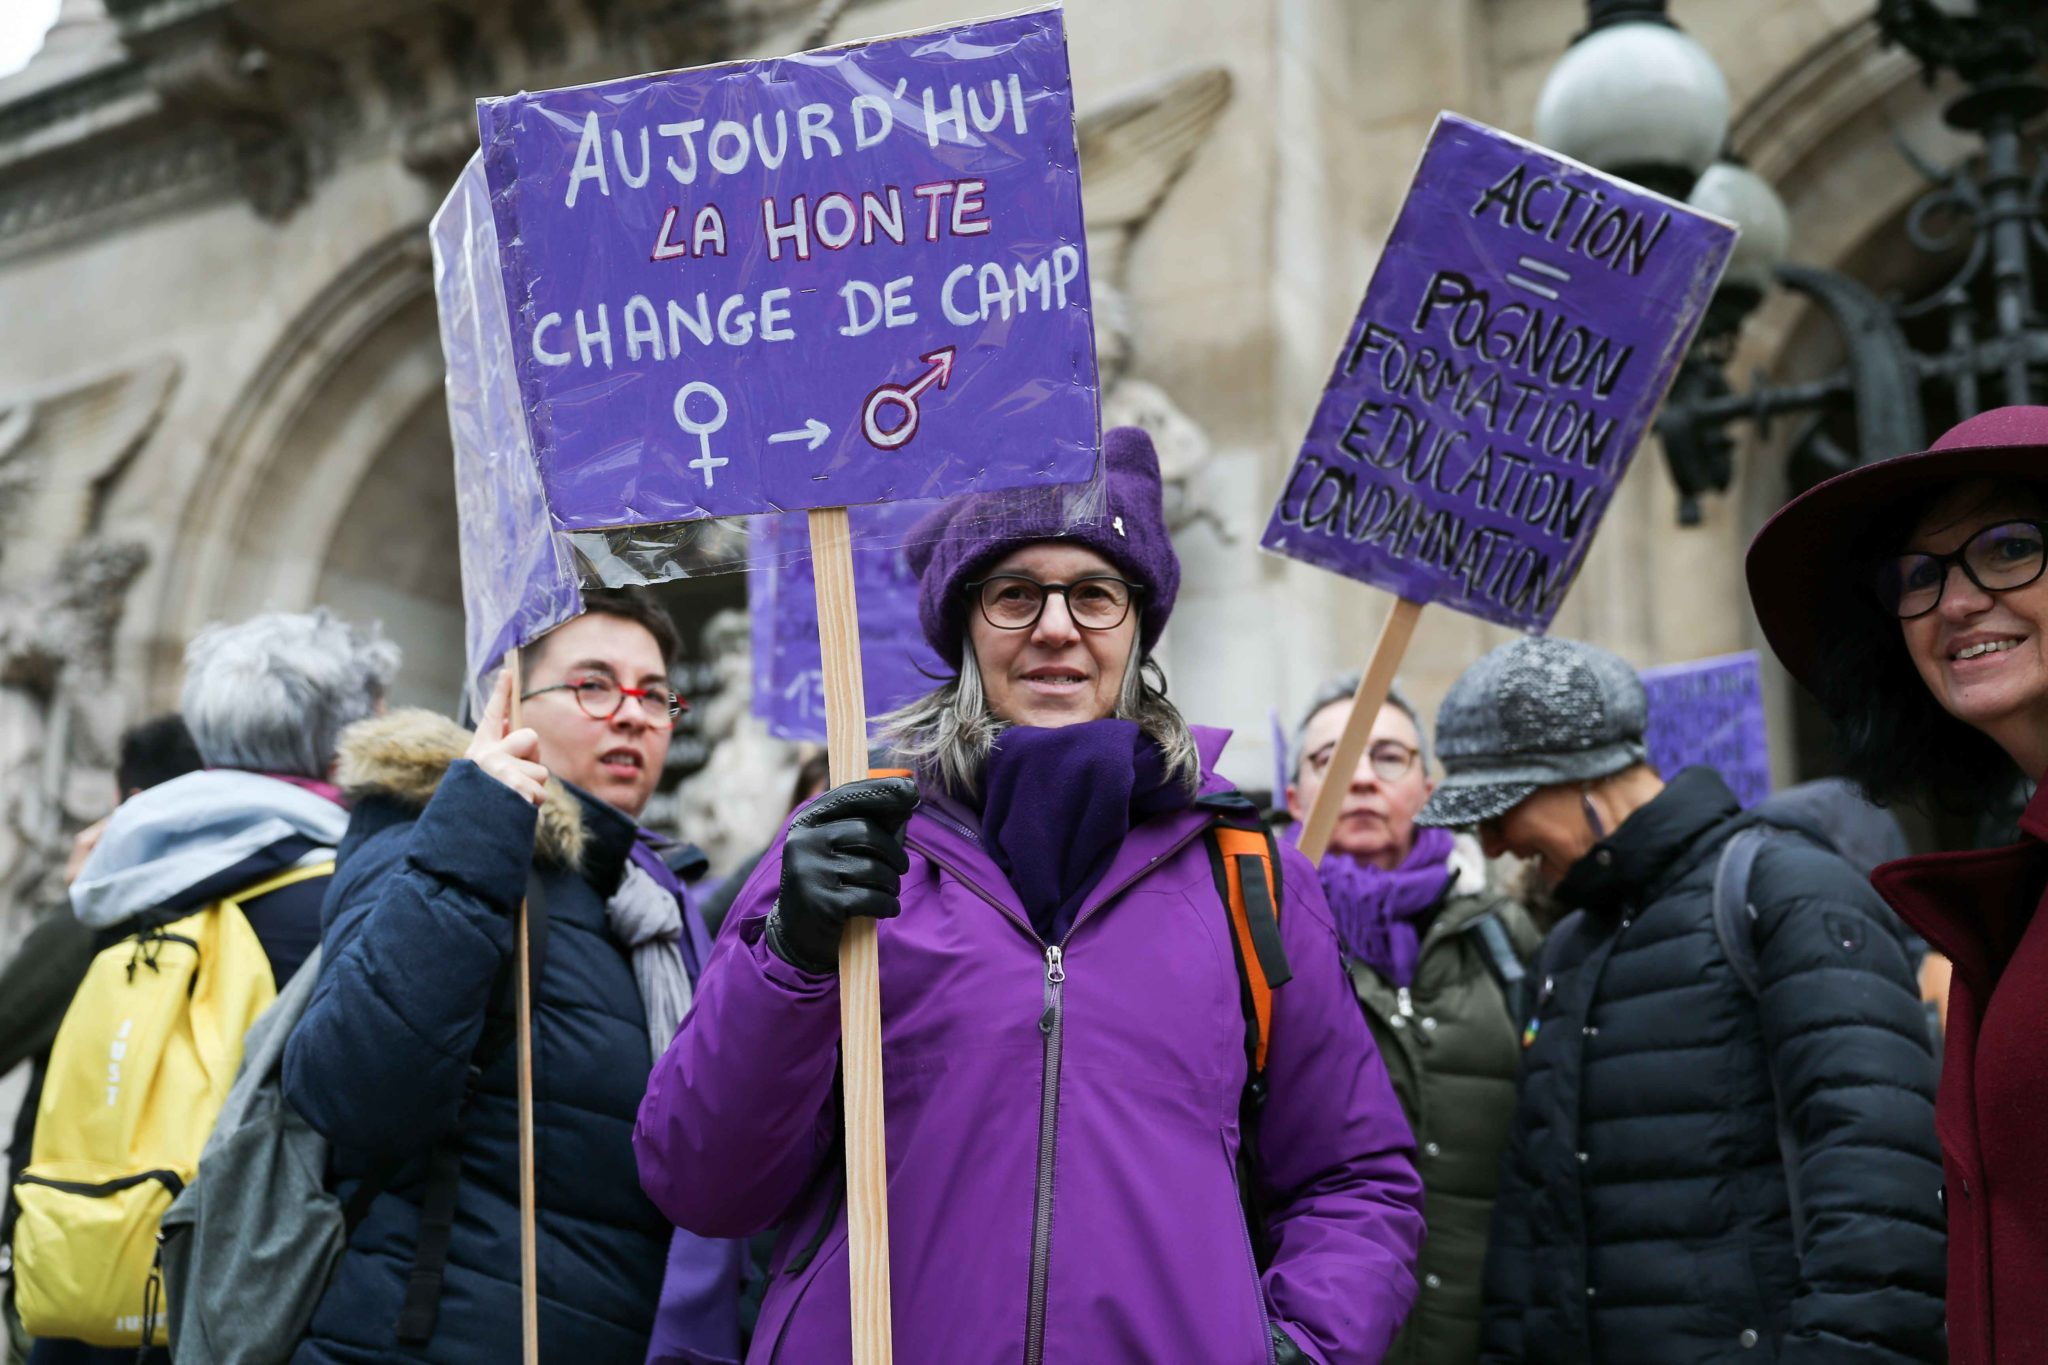 Women hold purple flags and signs during a protest to condemn violence against women, on November 23, 2019, in Paris, in front of the Garnier Opera House. Wearing purple – the adopted colour of feminist struggles – activists are taking to the streets o